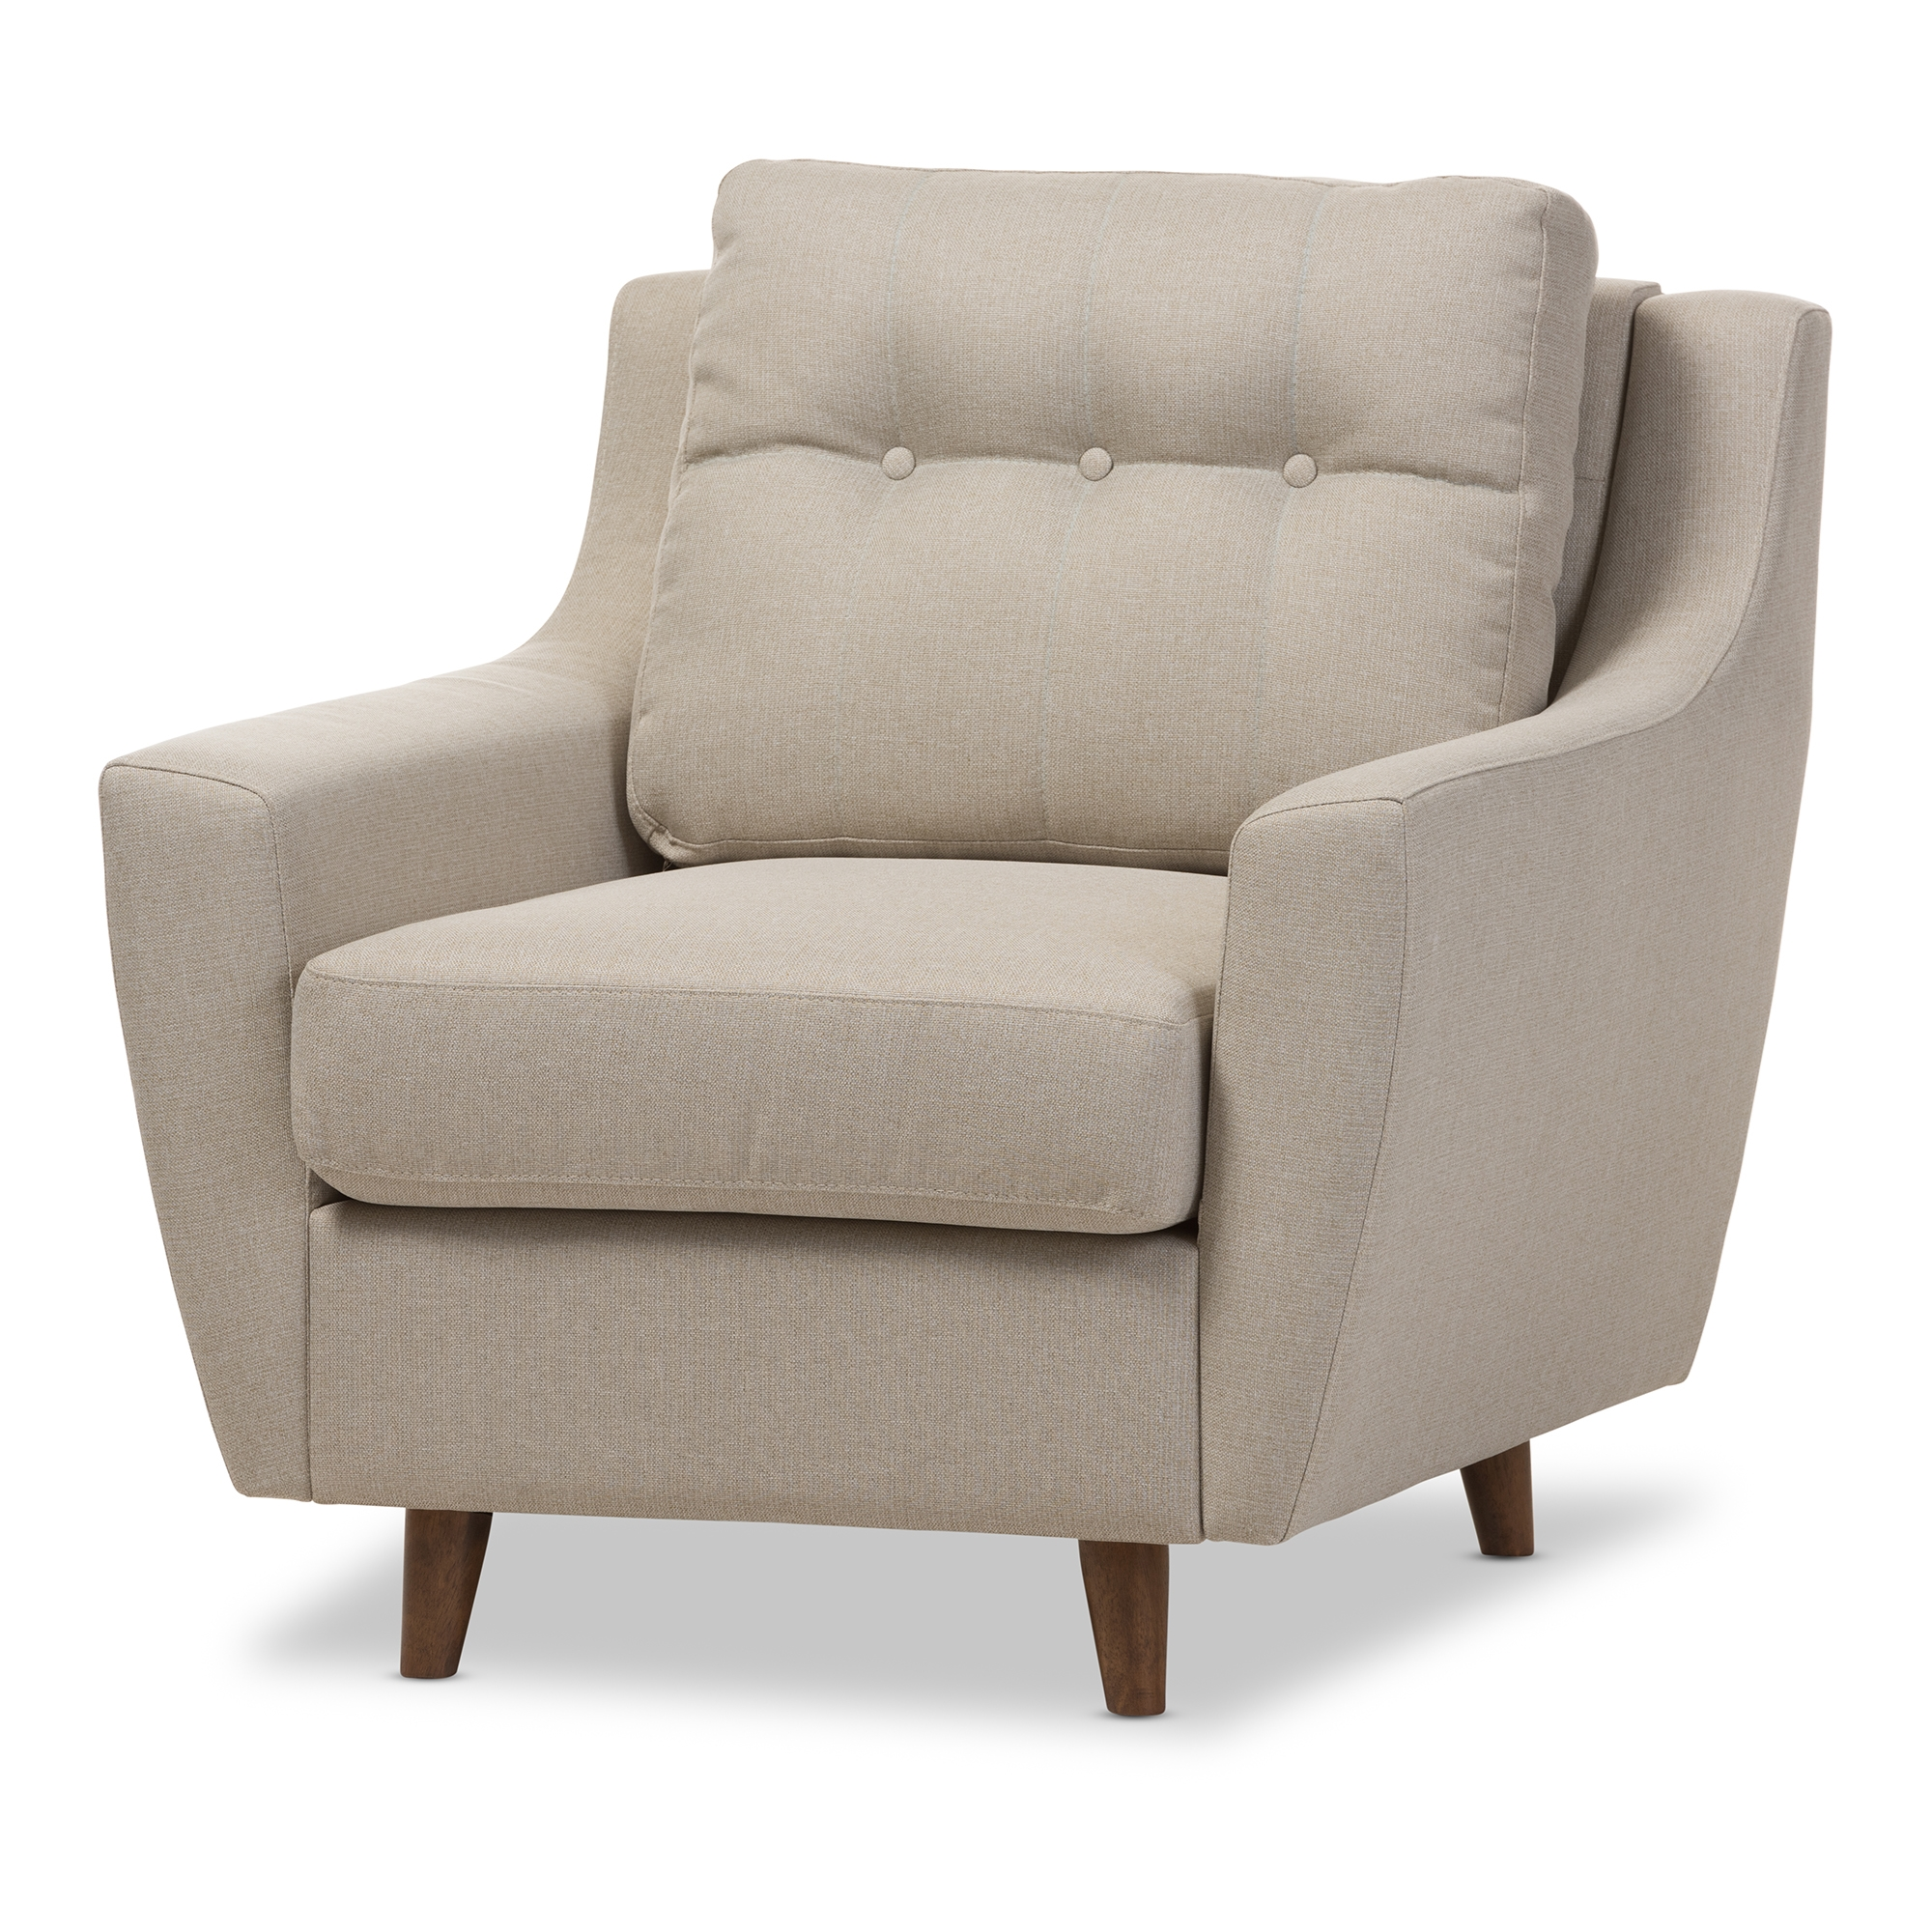 Accent ChairsLiving Room FurnitureAffordable Modern